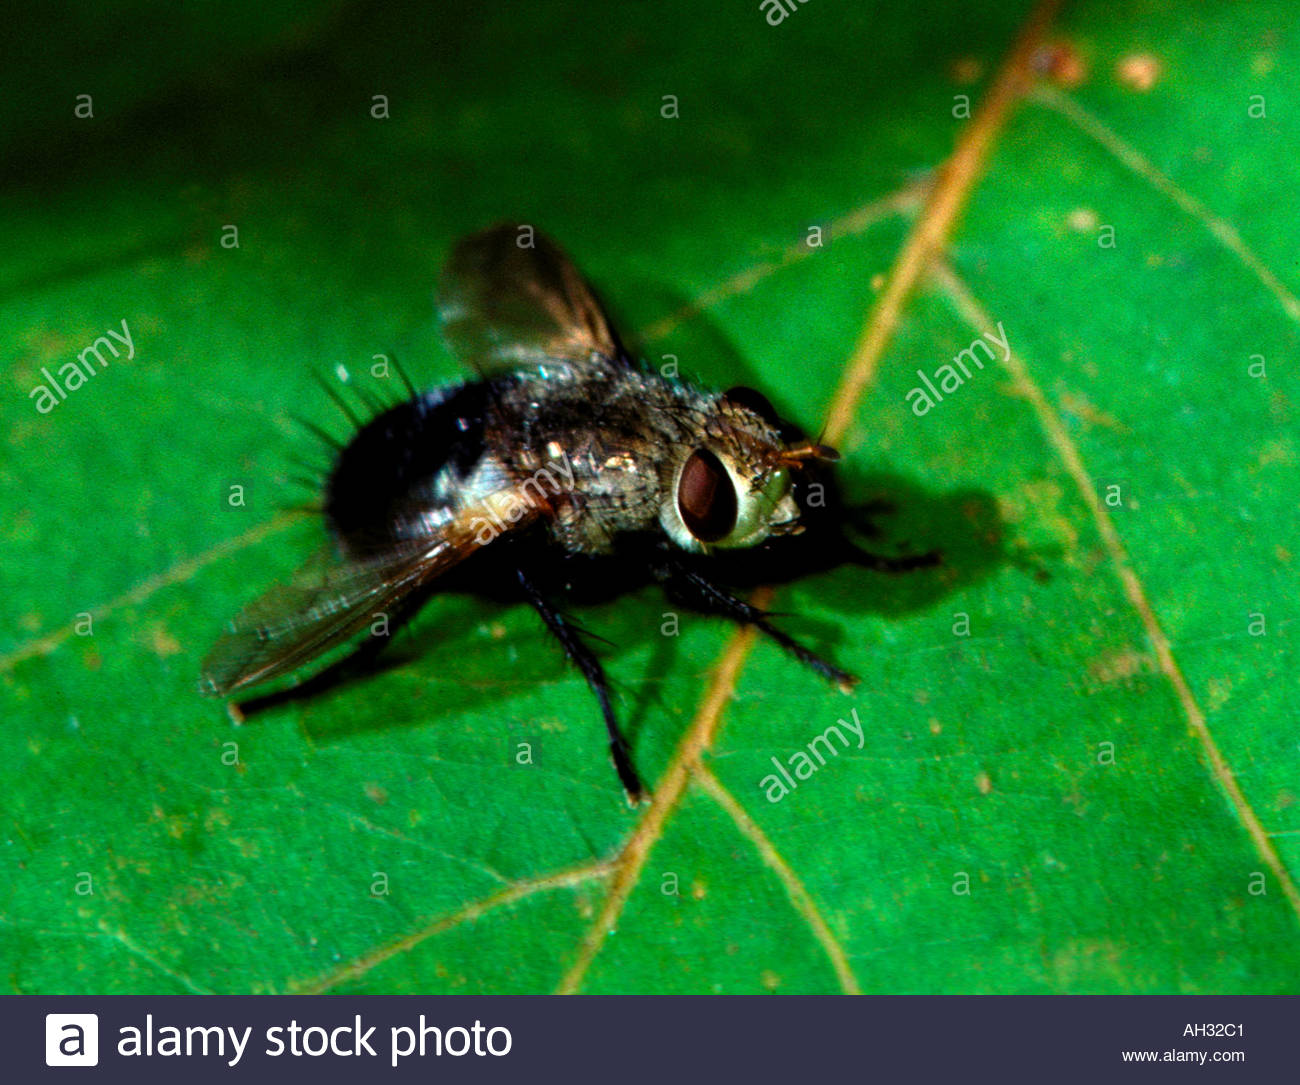 Tachinid fly Archytas sp female parasitic insect Stock Photo